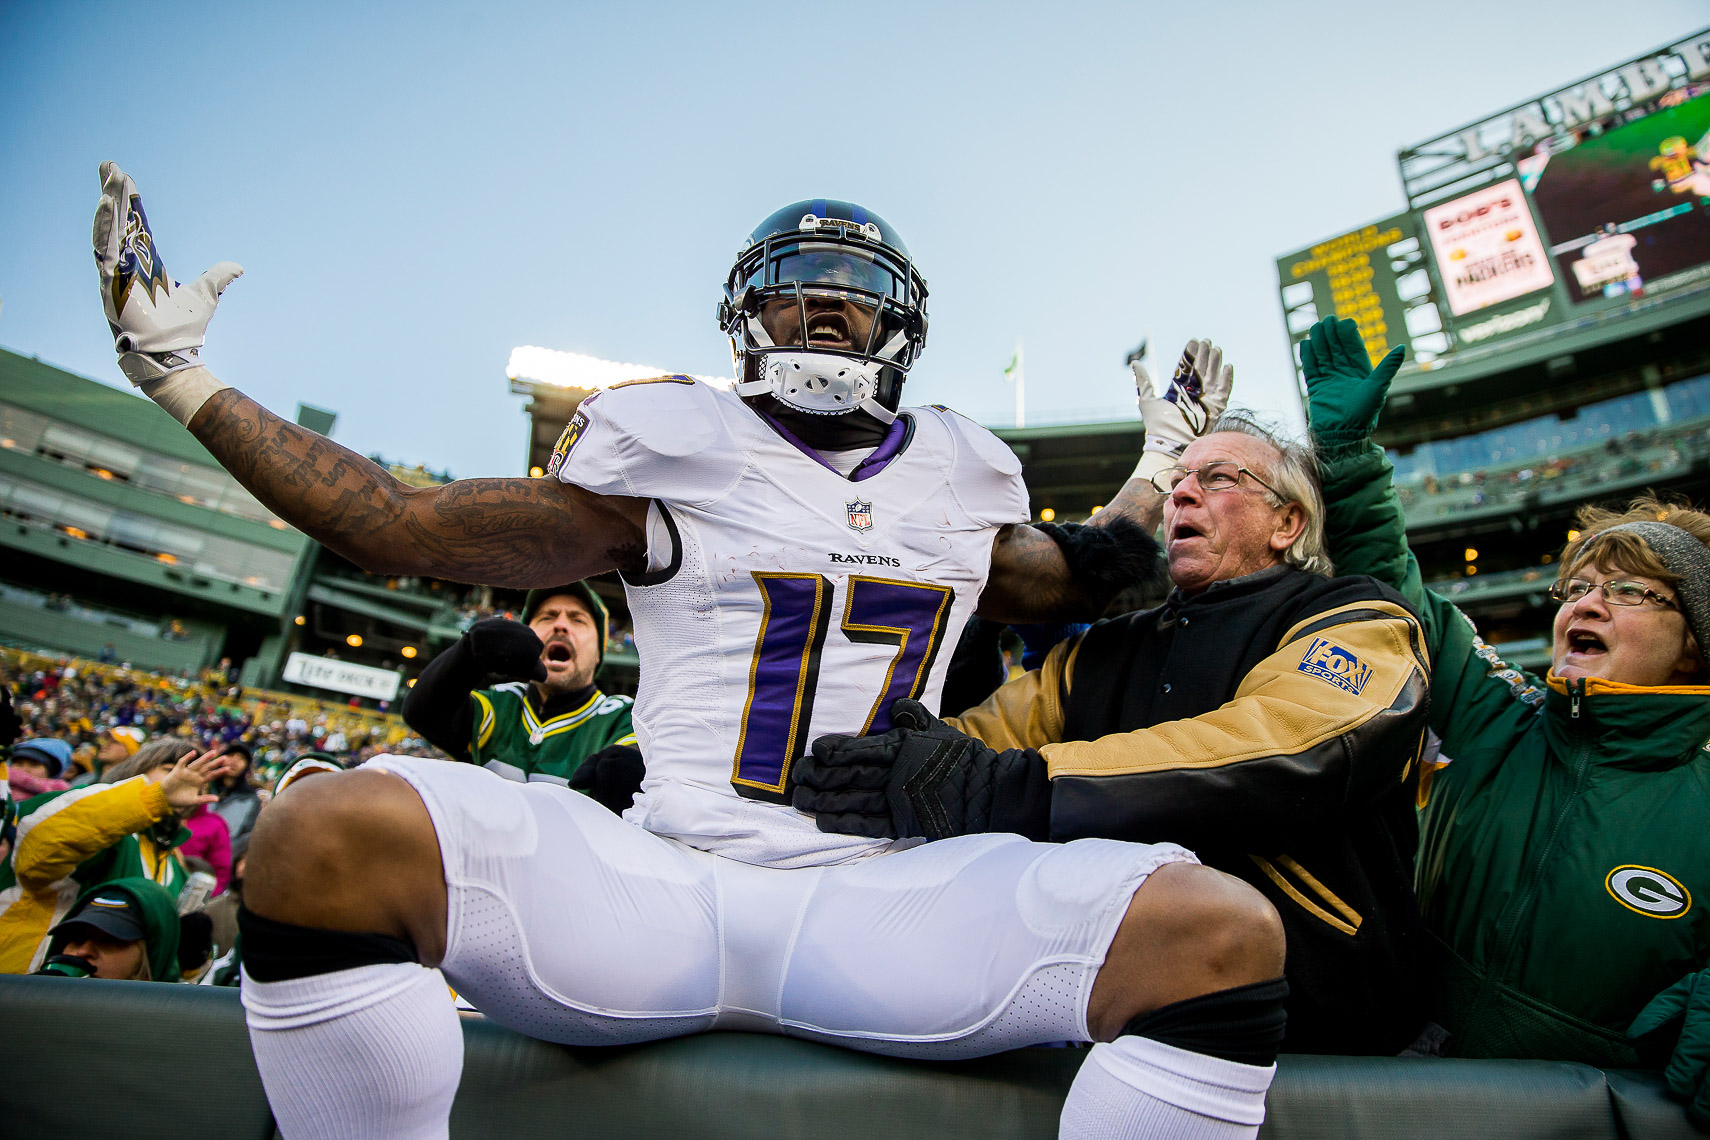 ravens22  NFL Baltimore Ravens photos NFL behind the scenes documentary sports photographer photo of receiver Mike Wallace Lambeau Leap